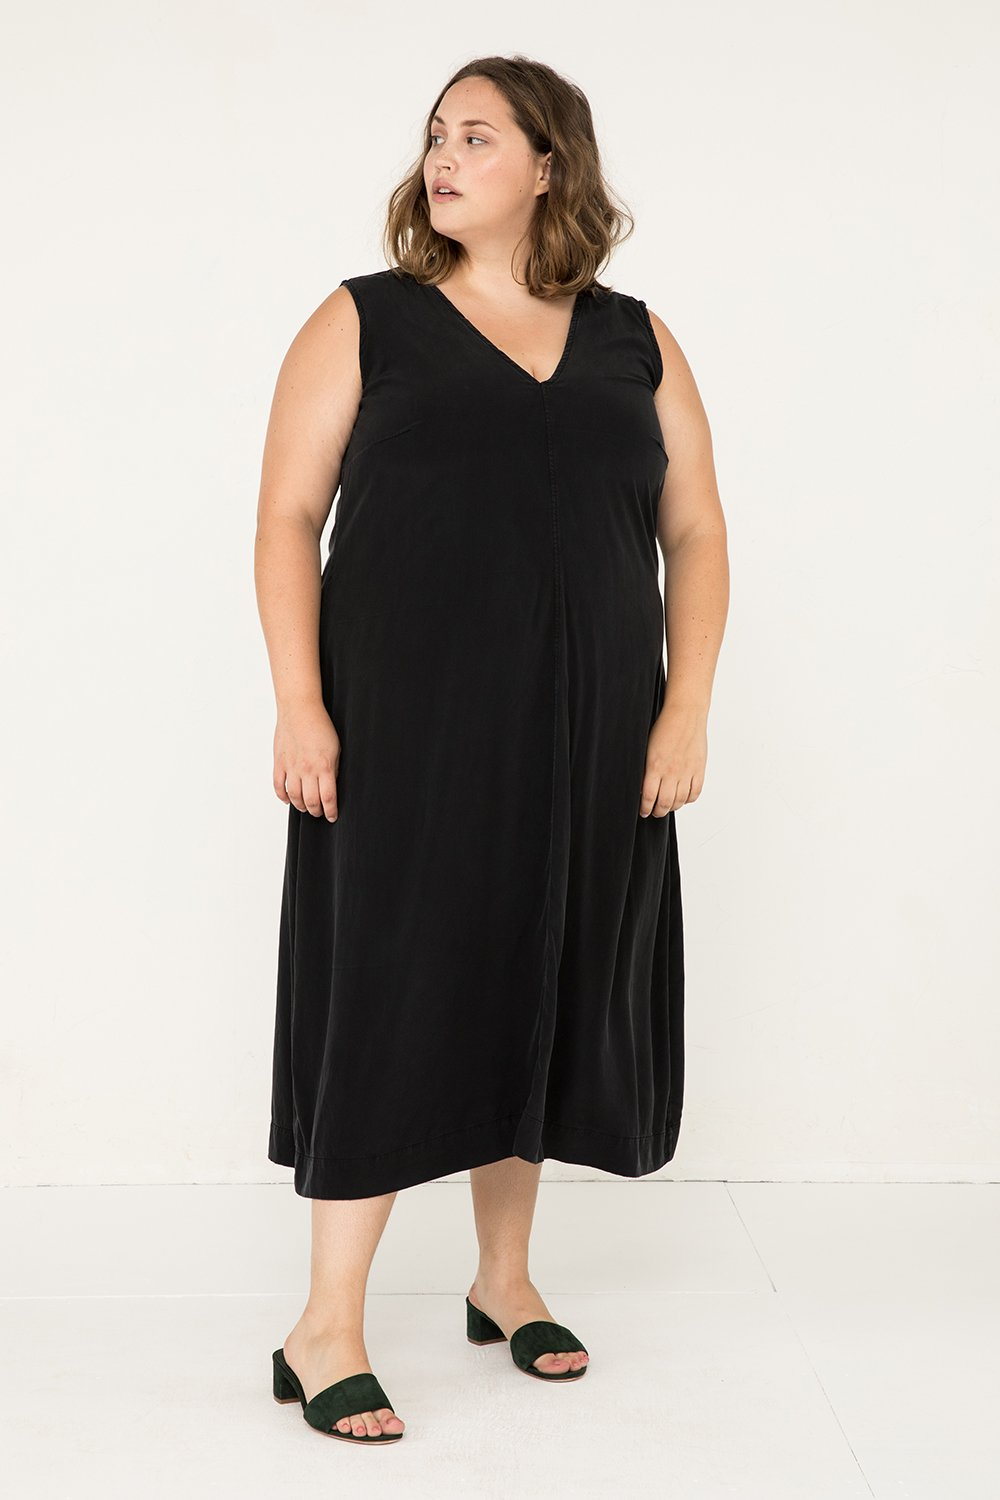 Polly Midi in Silk Crepe Black - Sam-2XL